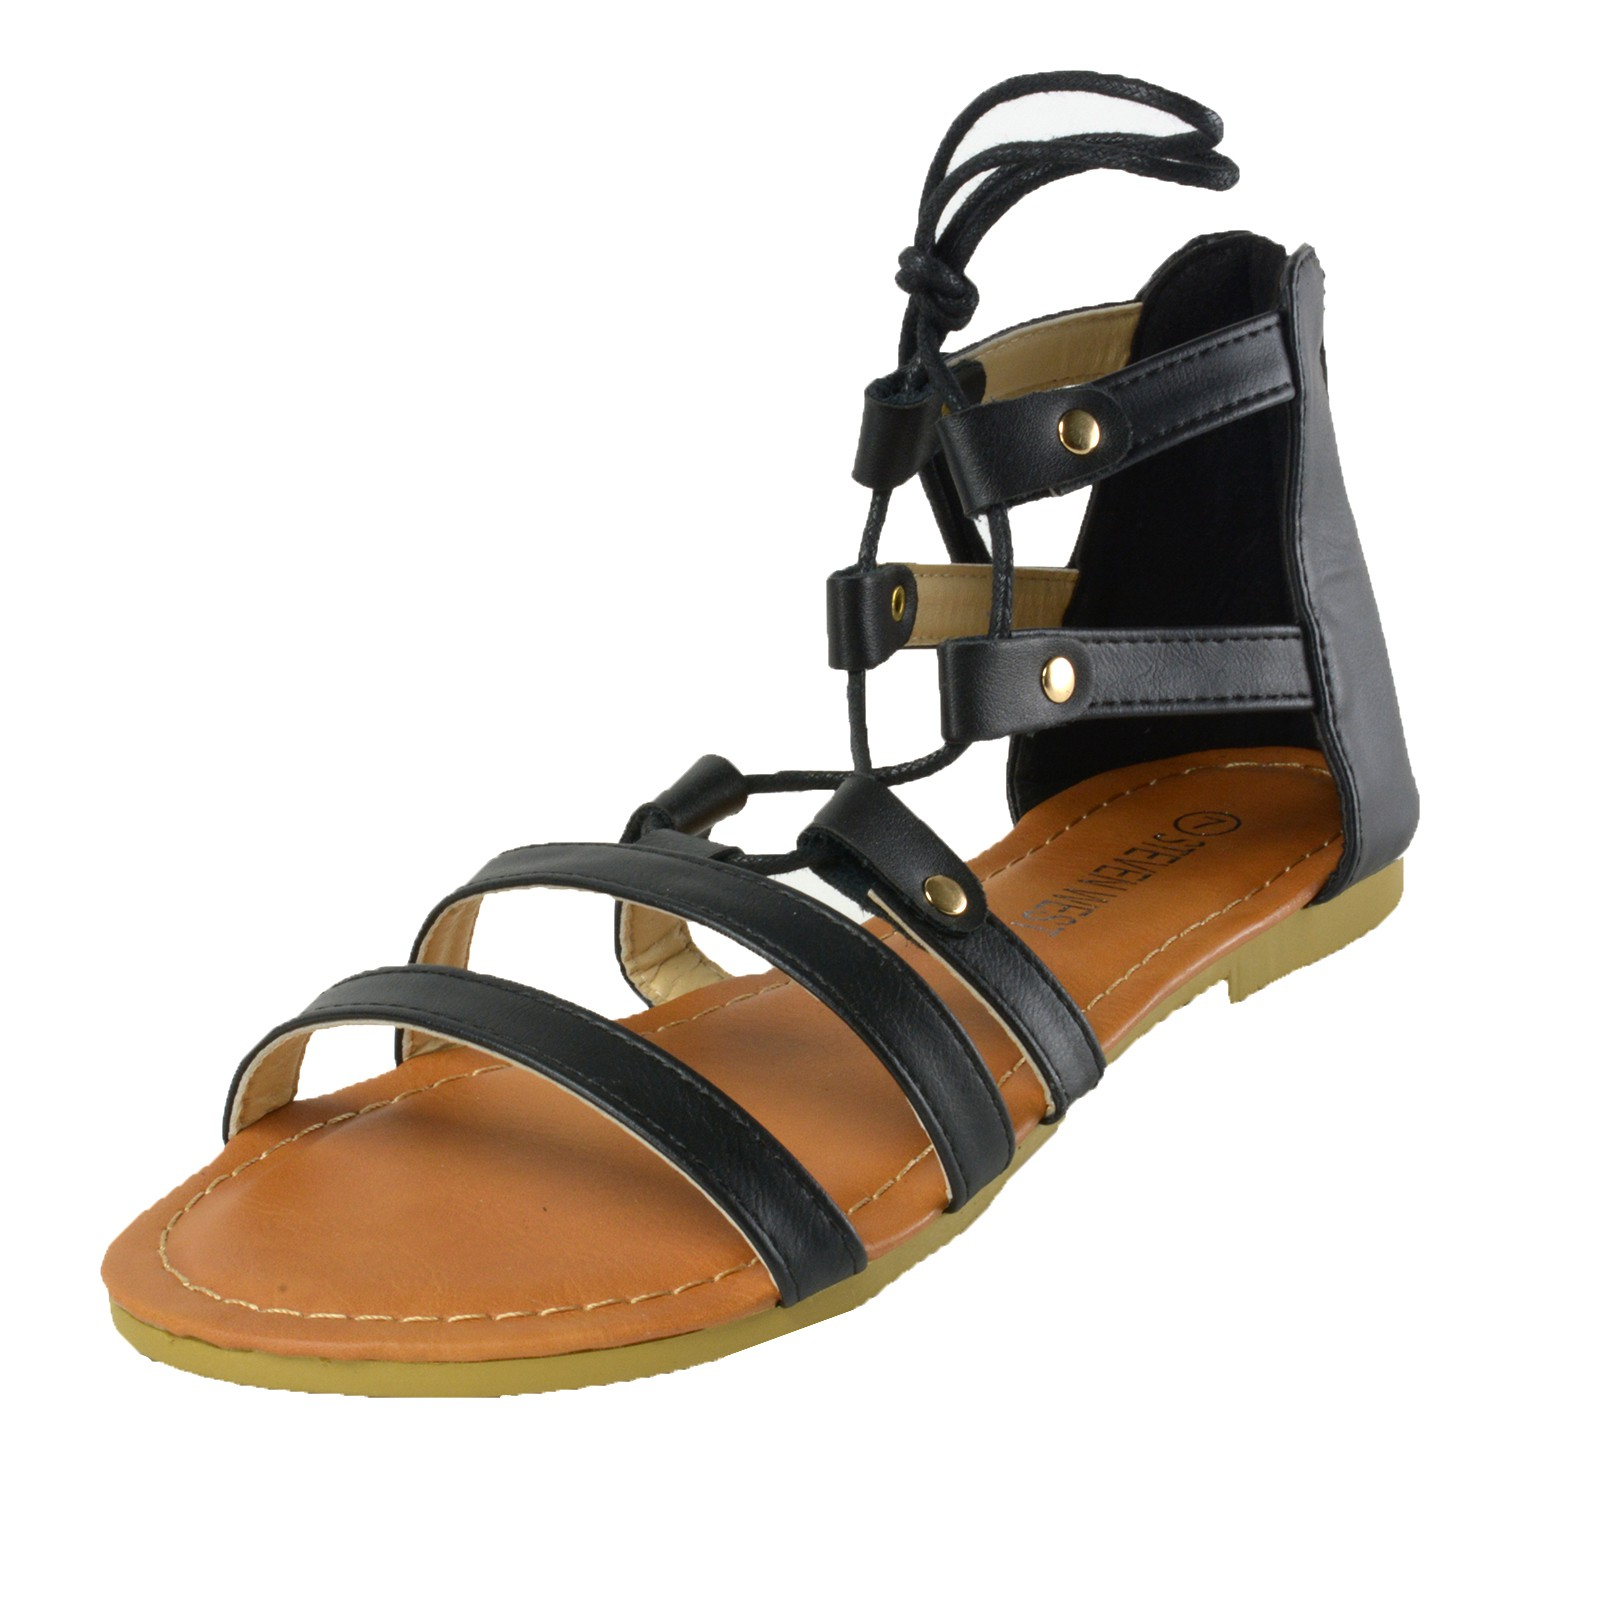 Womens sandals that zip up the back - Stand Out In The Crowd With These Stylish Lace Up Strappy Gladiator Flat Sandals The Trendy Lace Up Design Makes Them Truly Unique And An